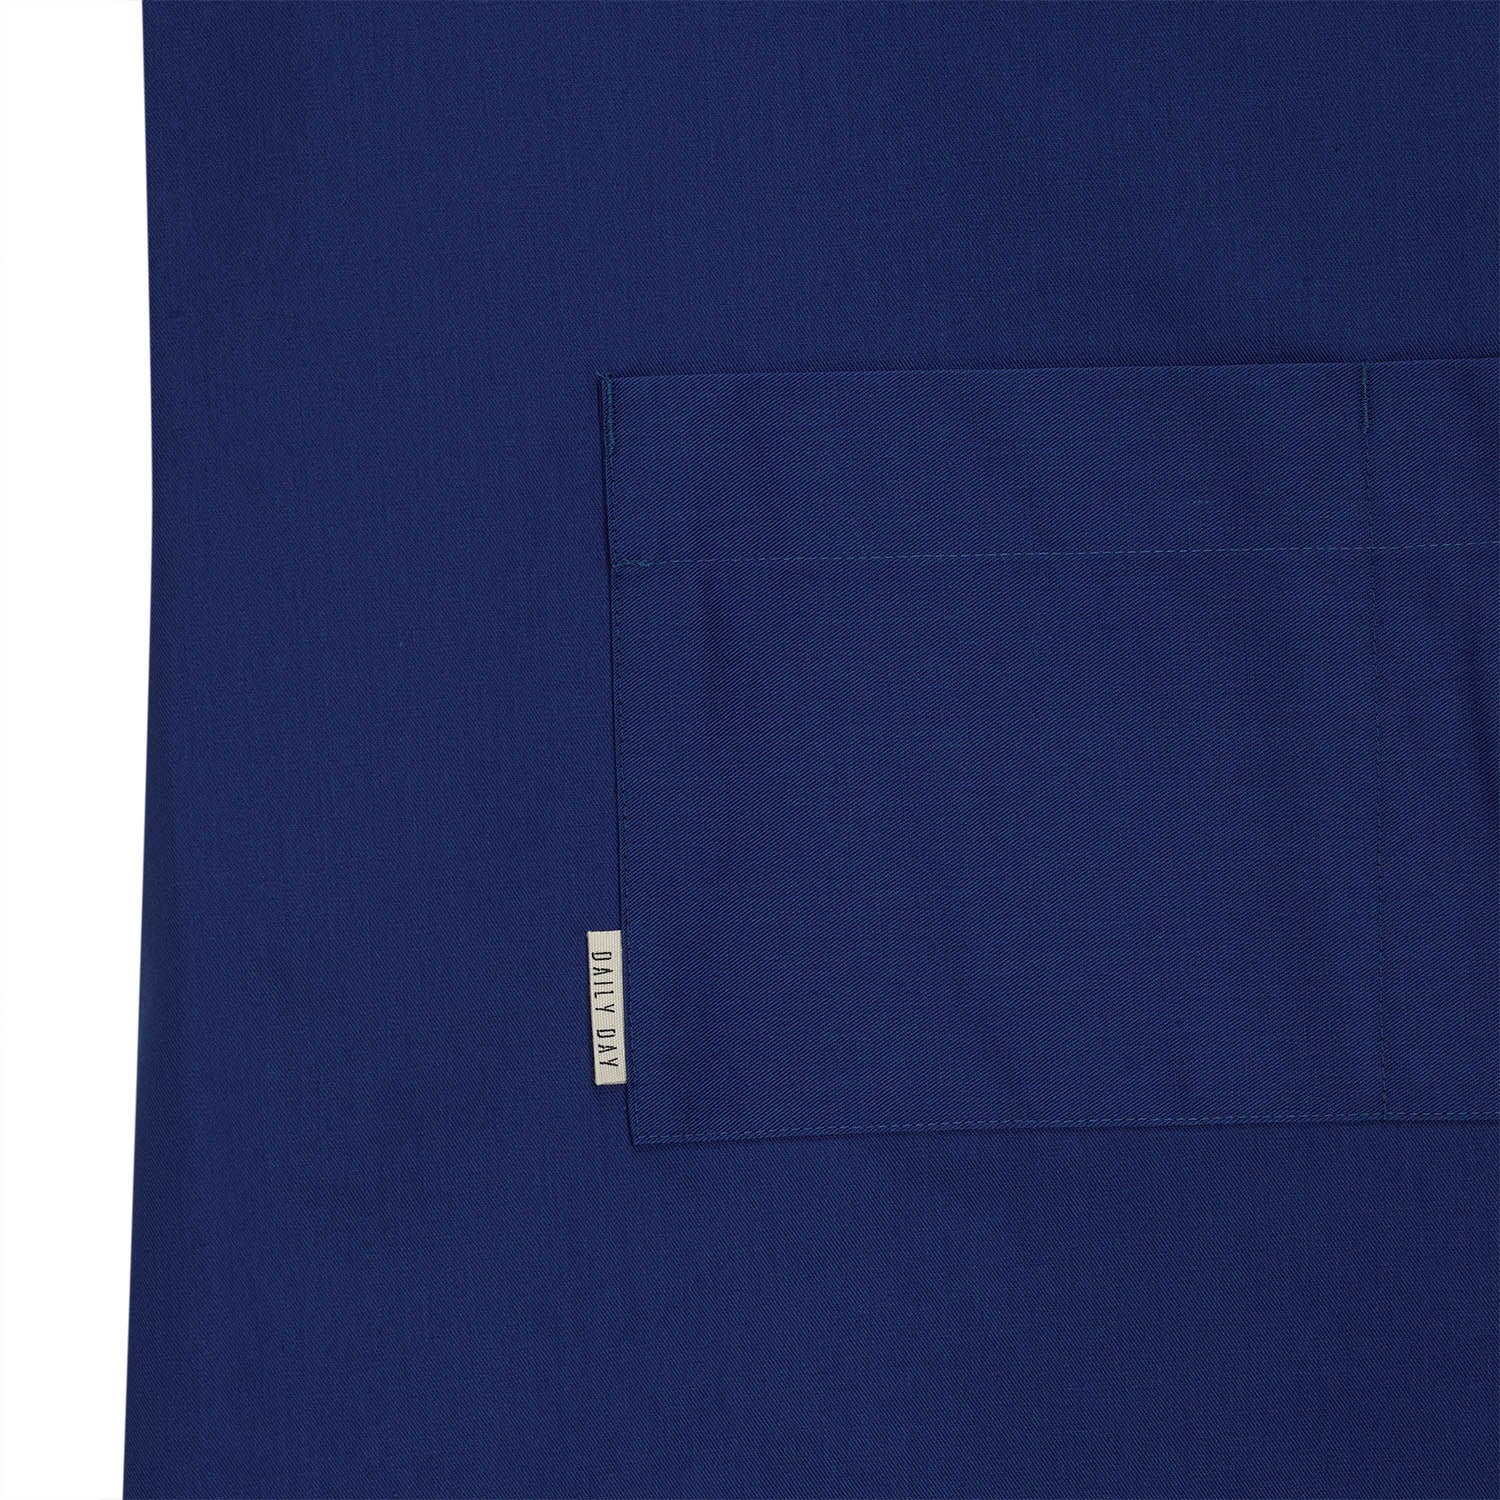 Apron Thomas - Blue